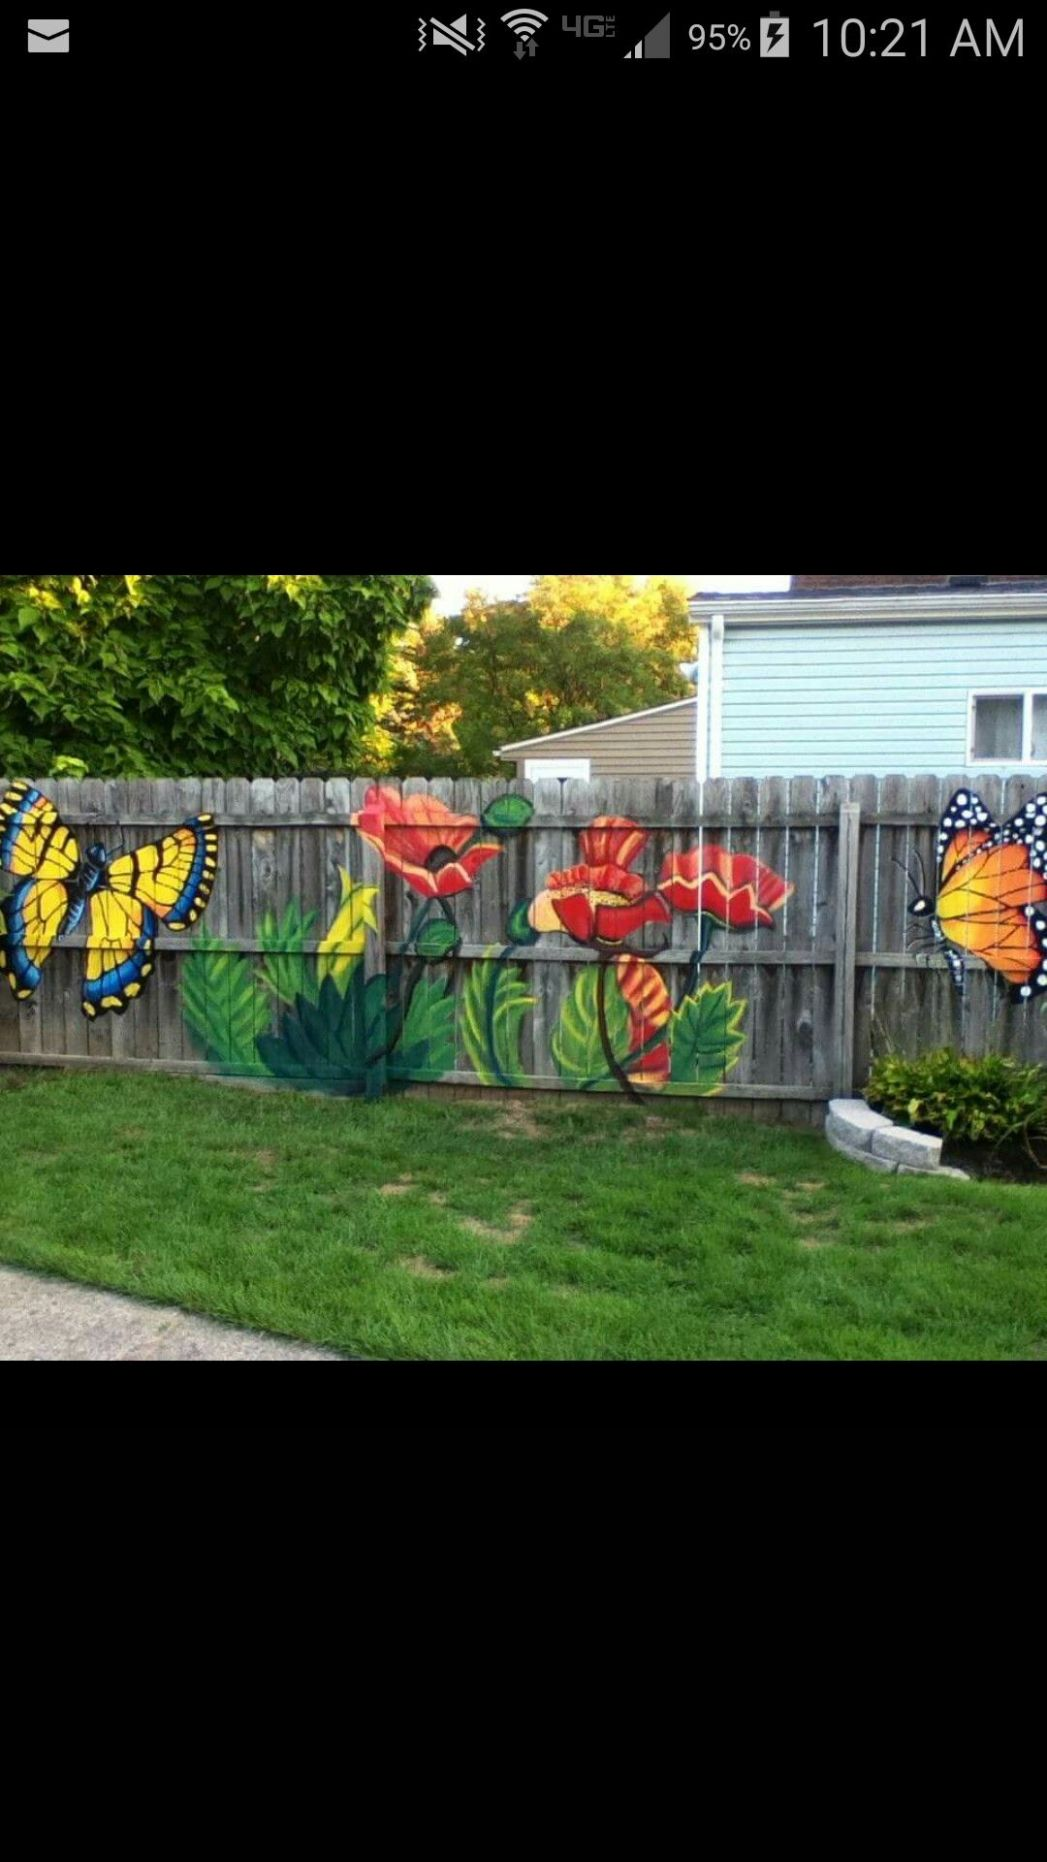 Beautiful | Garden fence art, Backyard fences, Garden mural